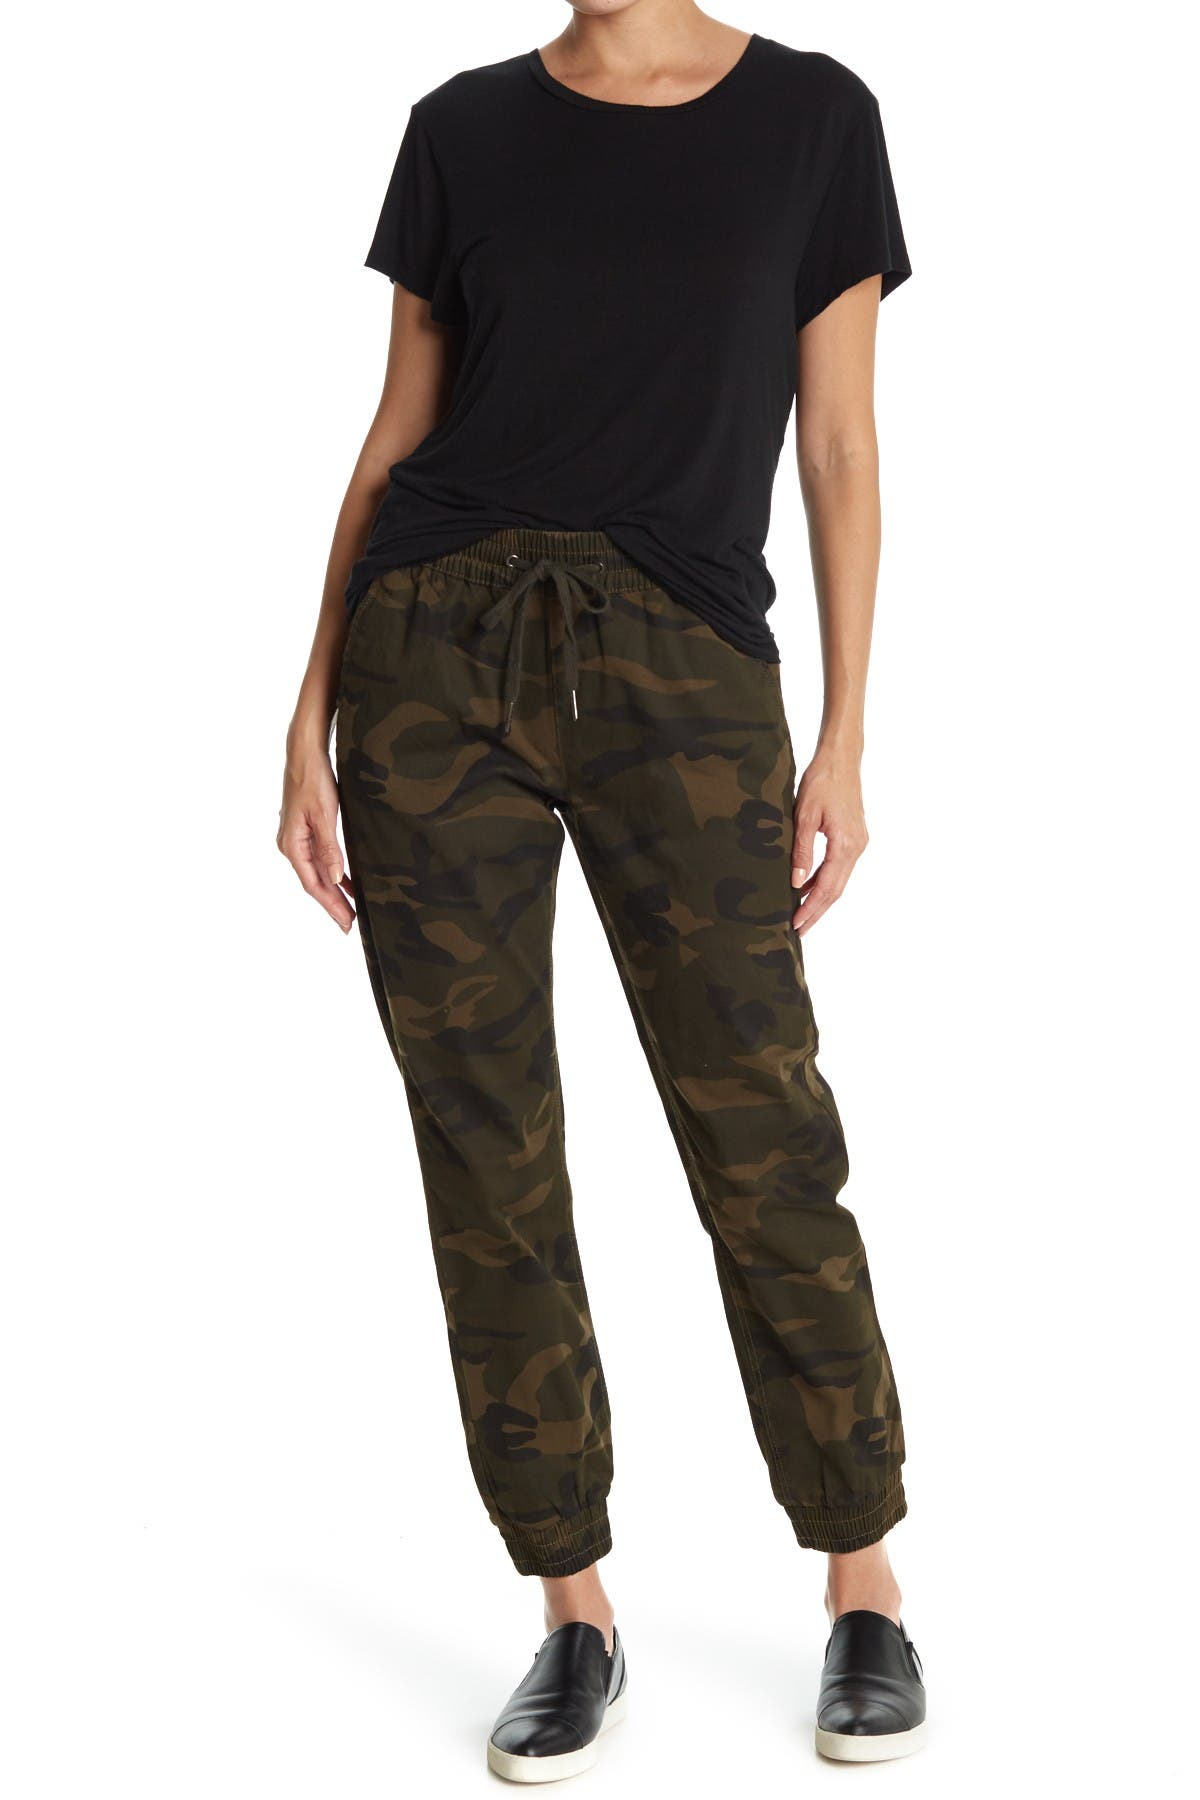 Image of RAG SUPPLY Camo Twill Joggers